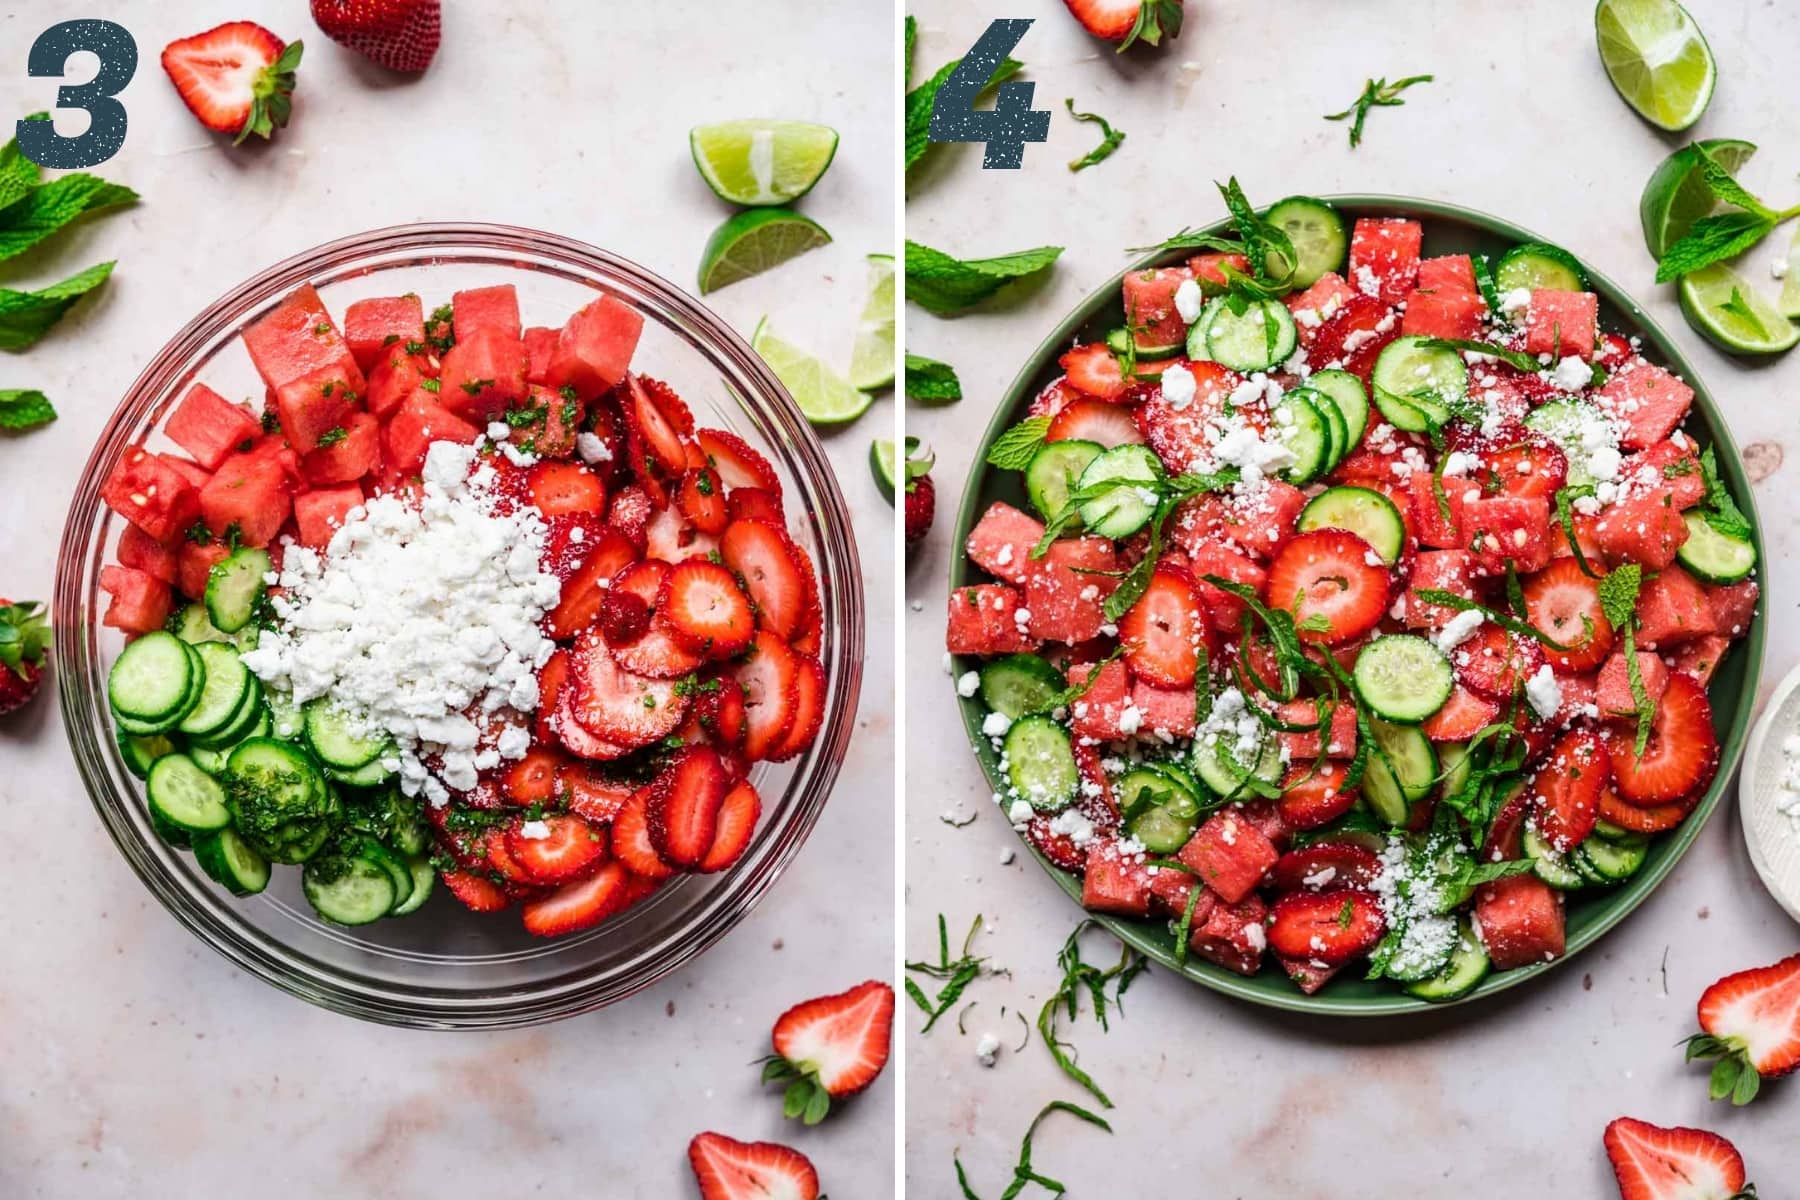 before and after mixing together ingredients for watermelon cucumber salad.